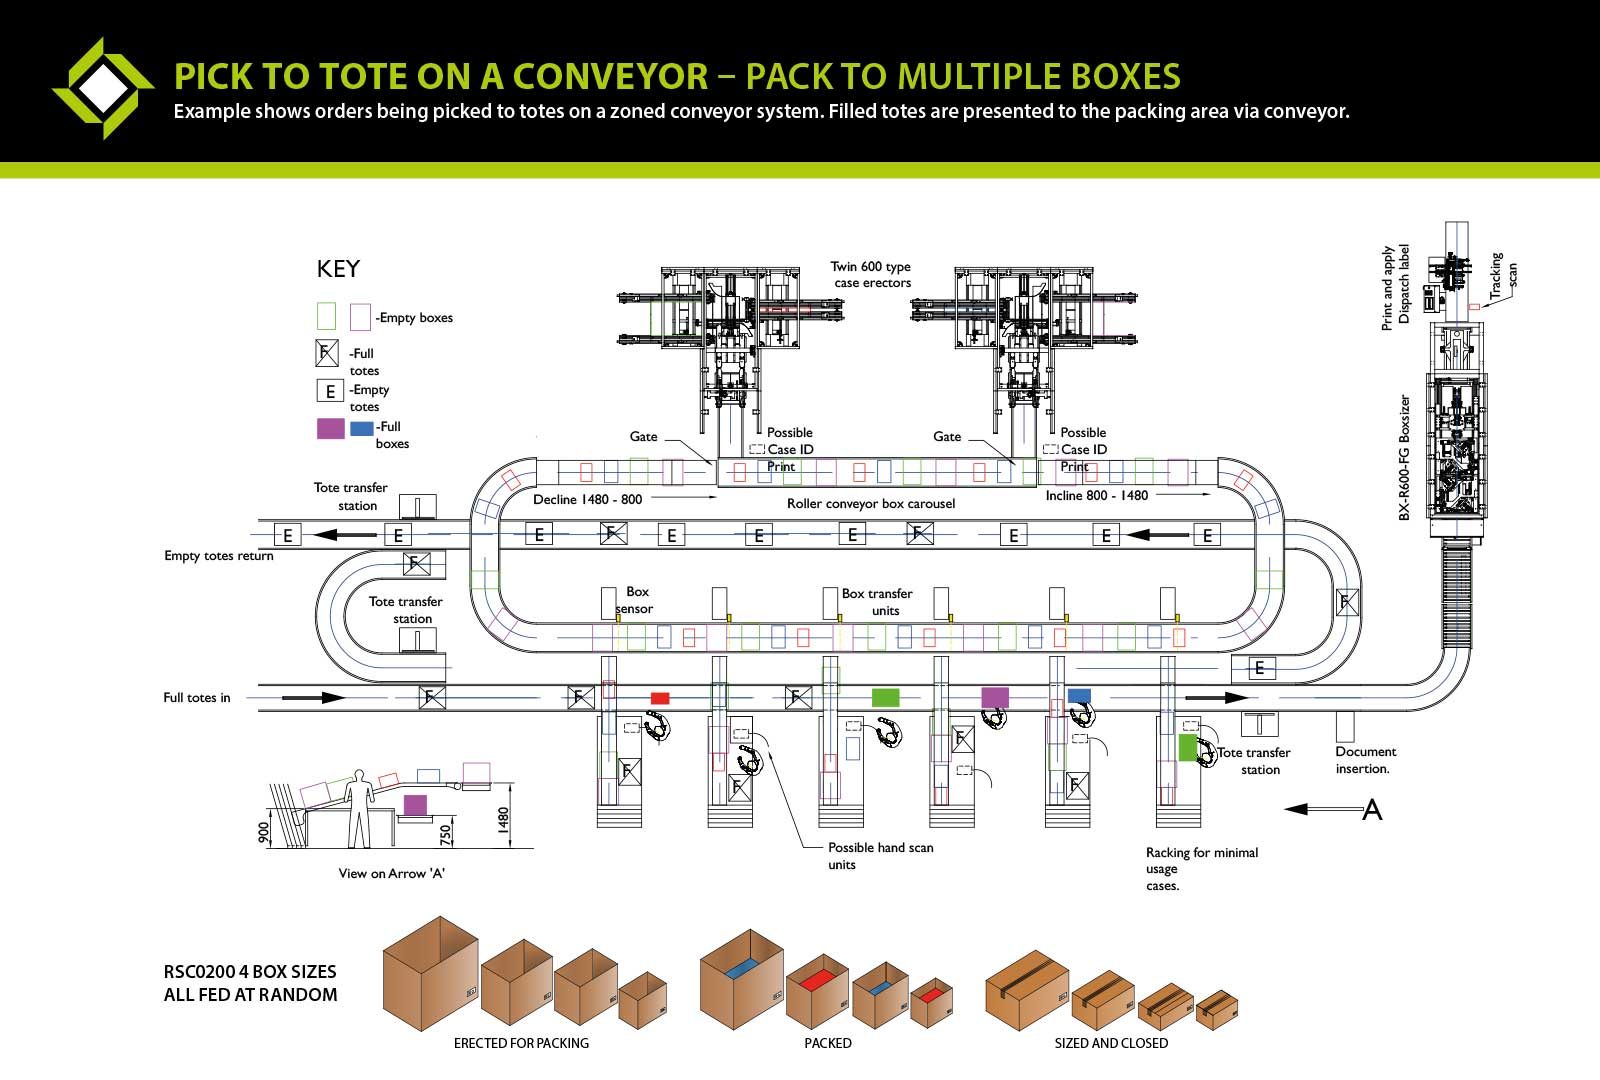 Pick to Tote on a Conveyor - Pack to Multiple Boxes ecom packaging line